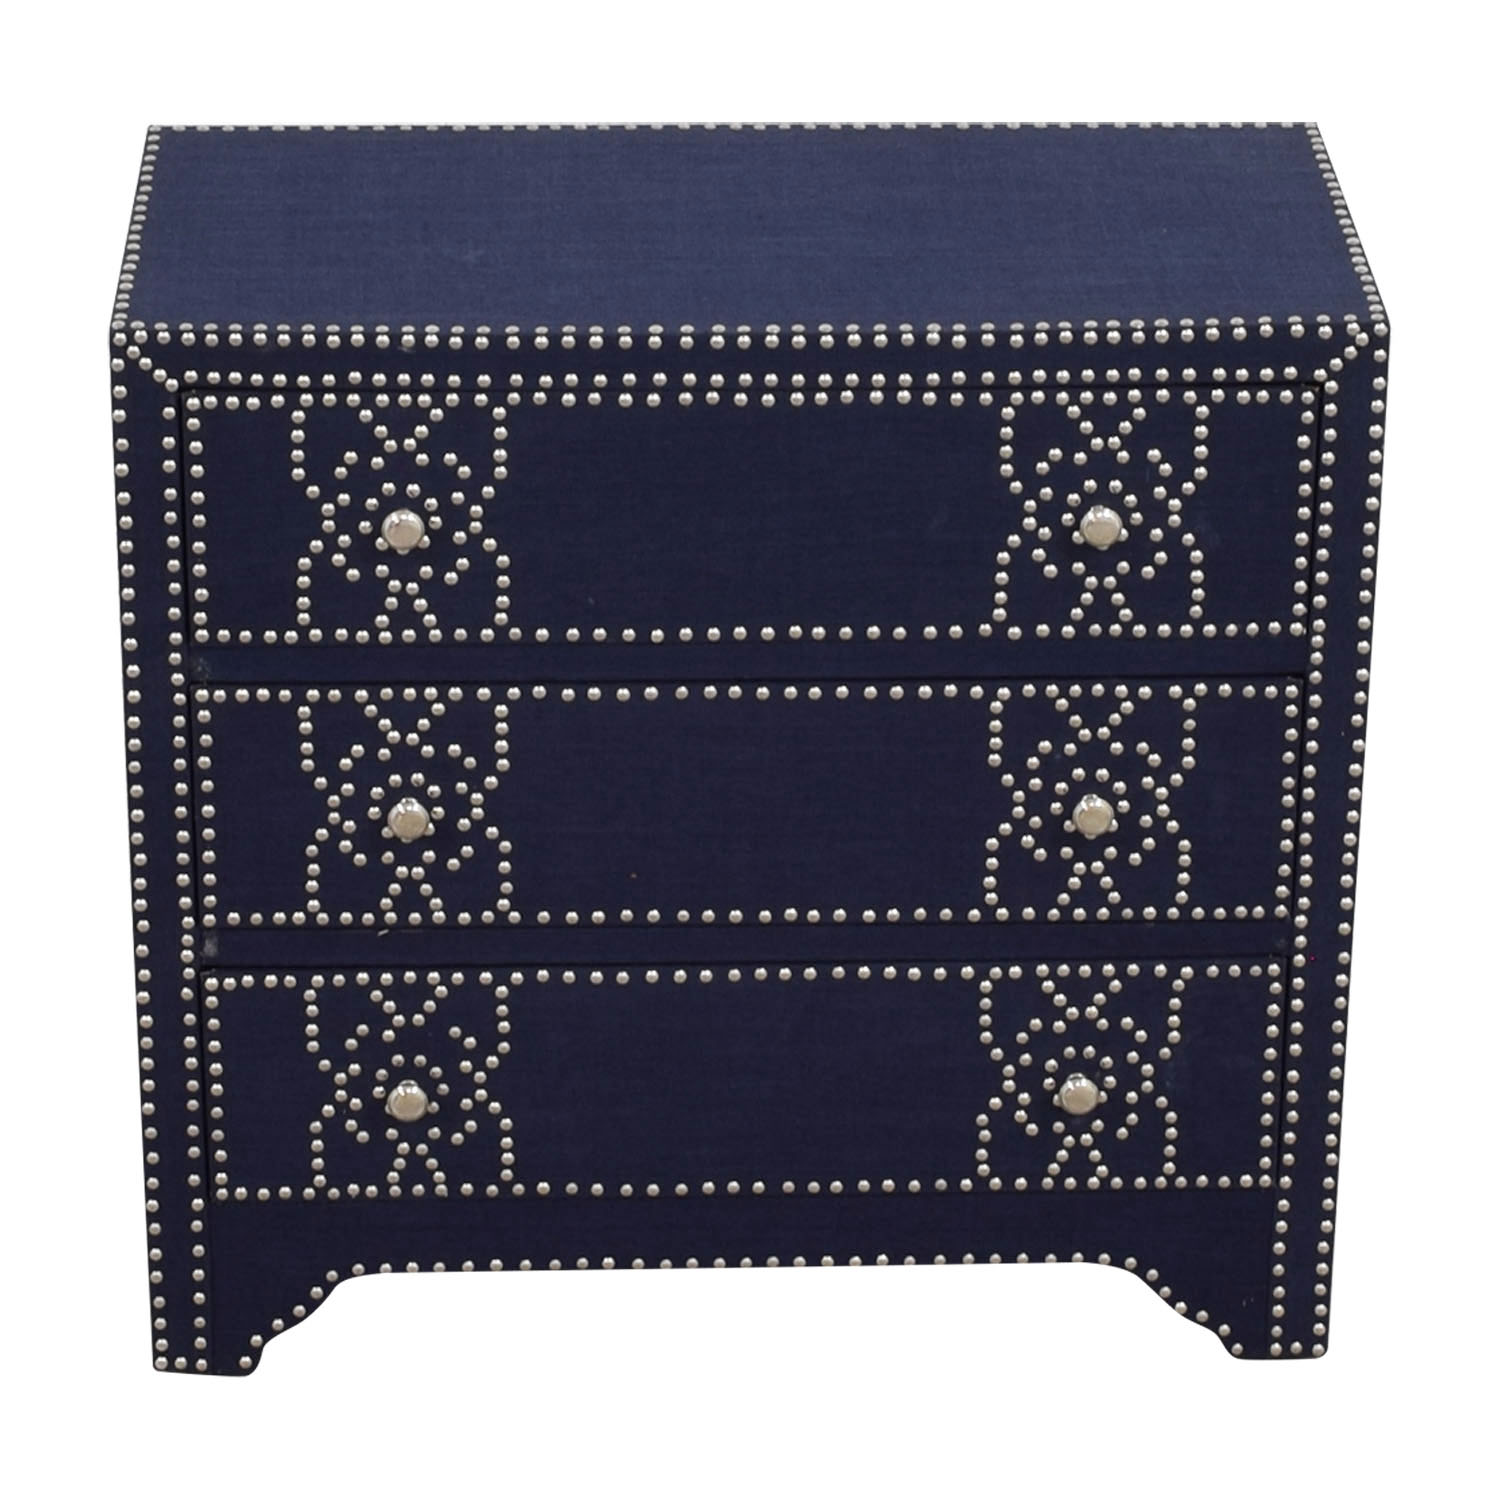 Pier 1 Imports Pier 1 Imports Denim Fabric Lexford Chest with Nailheads discount